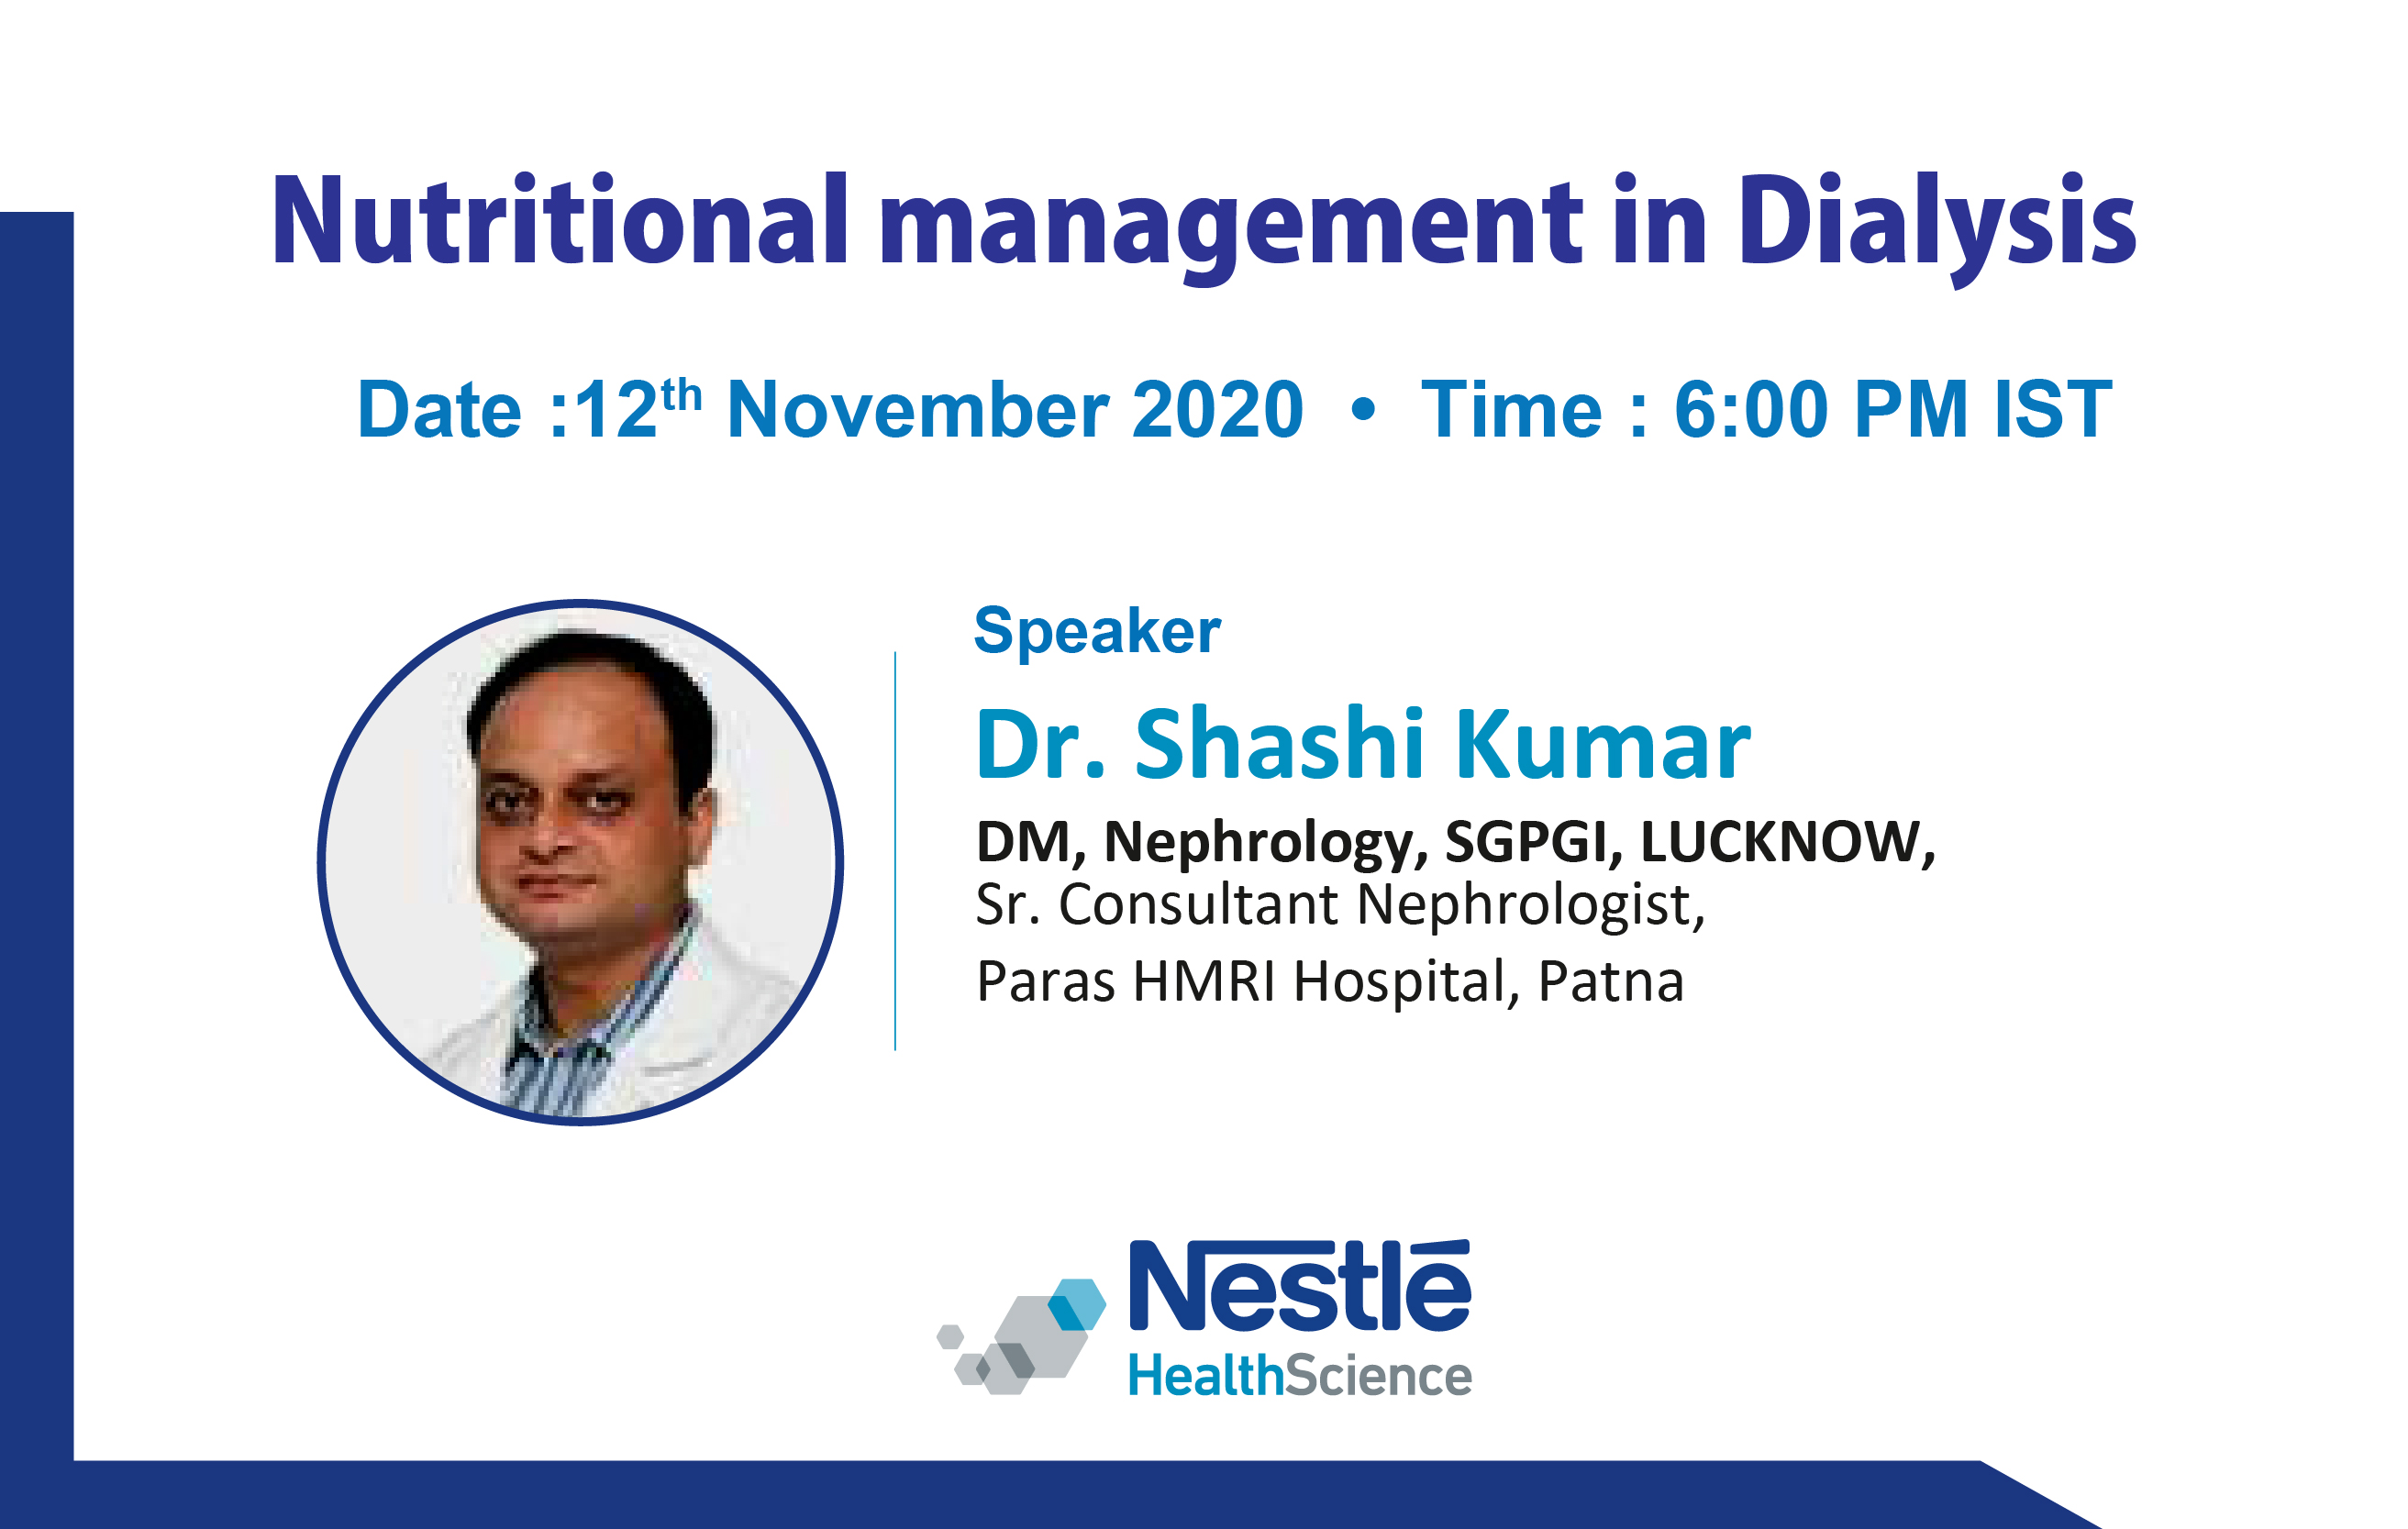 Nutritional management in Dialysis